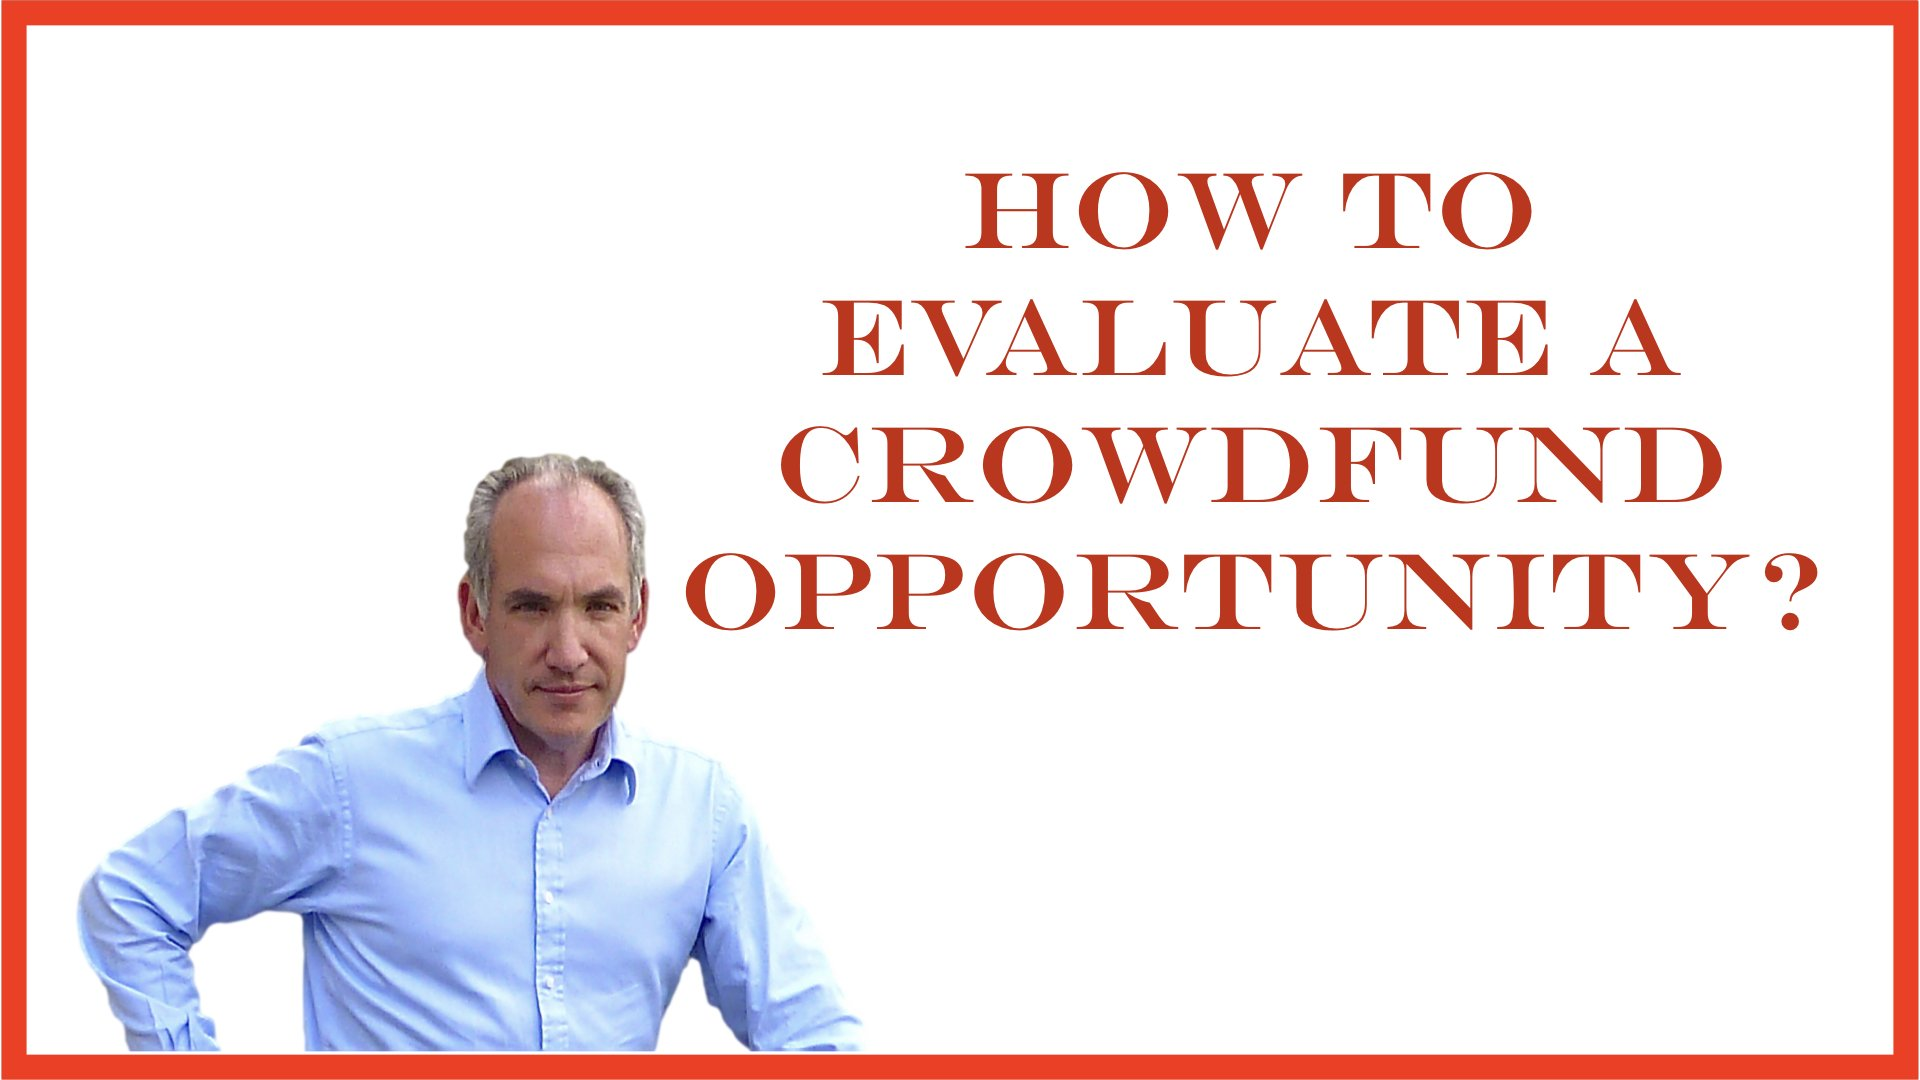 Investment Banking 101 - How to Evaluate a Crowdfund Opportunity